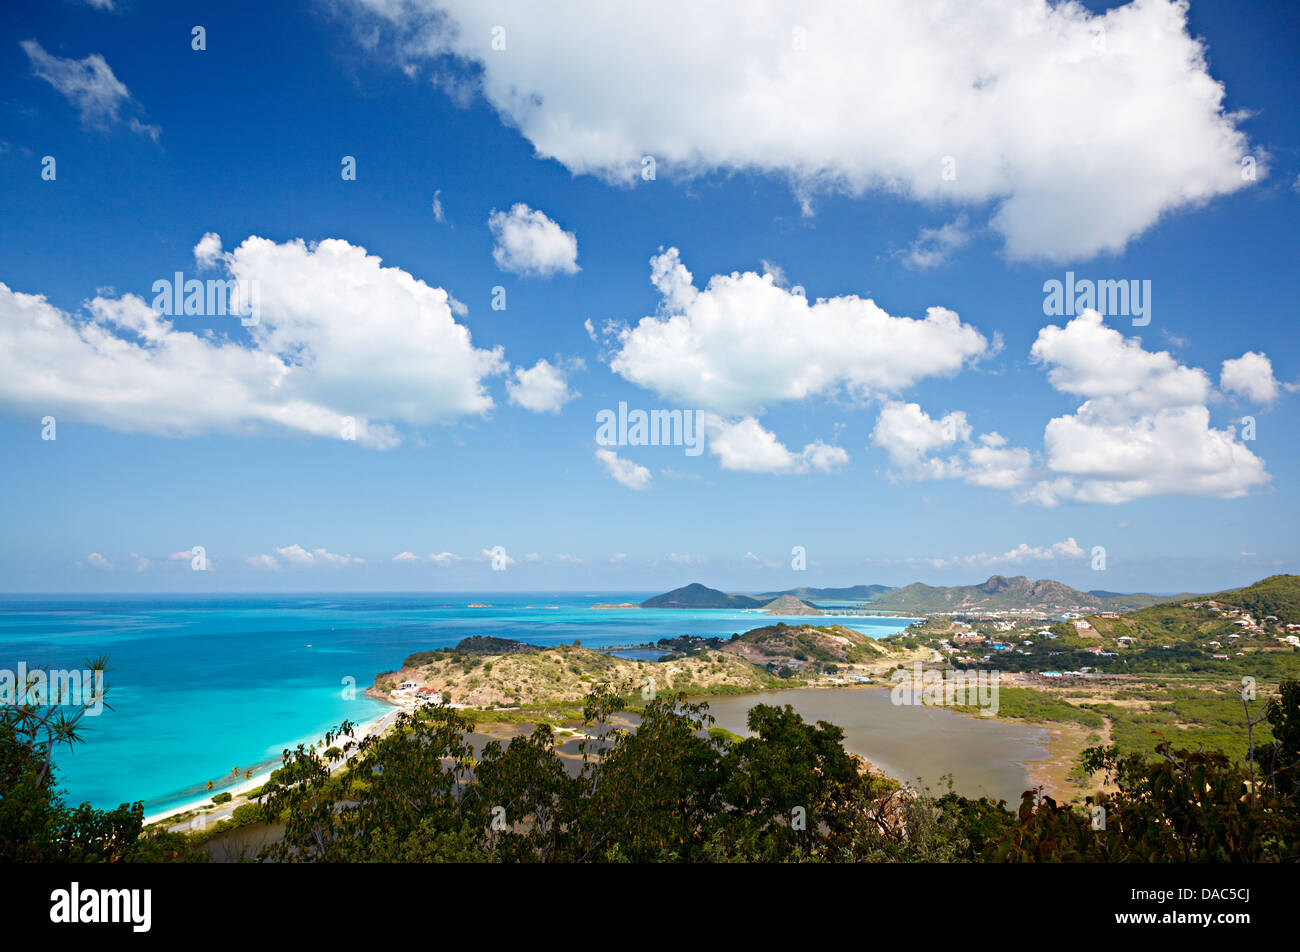 Caribbean landscape in Antigua seen from a hill with Darkwood Beach to the left. Stock Photo